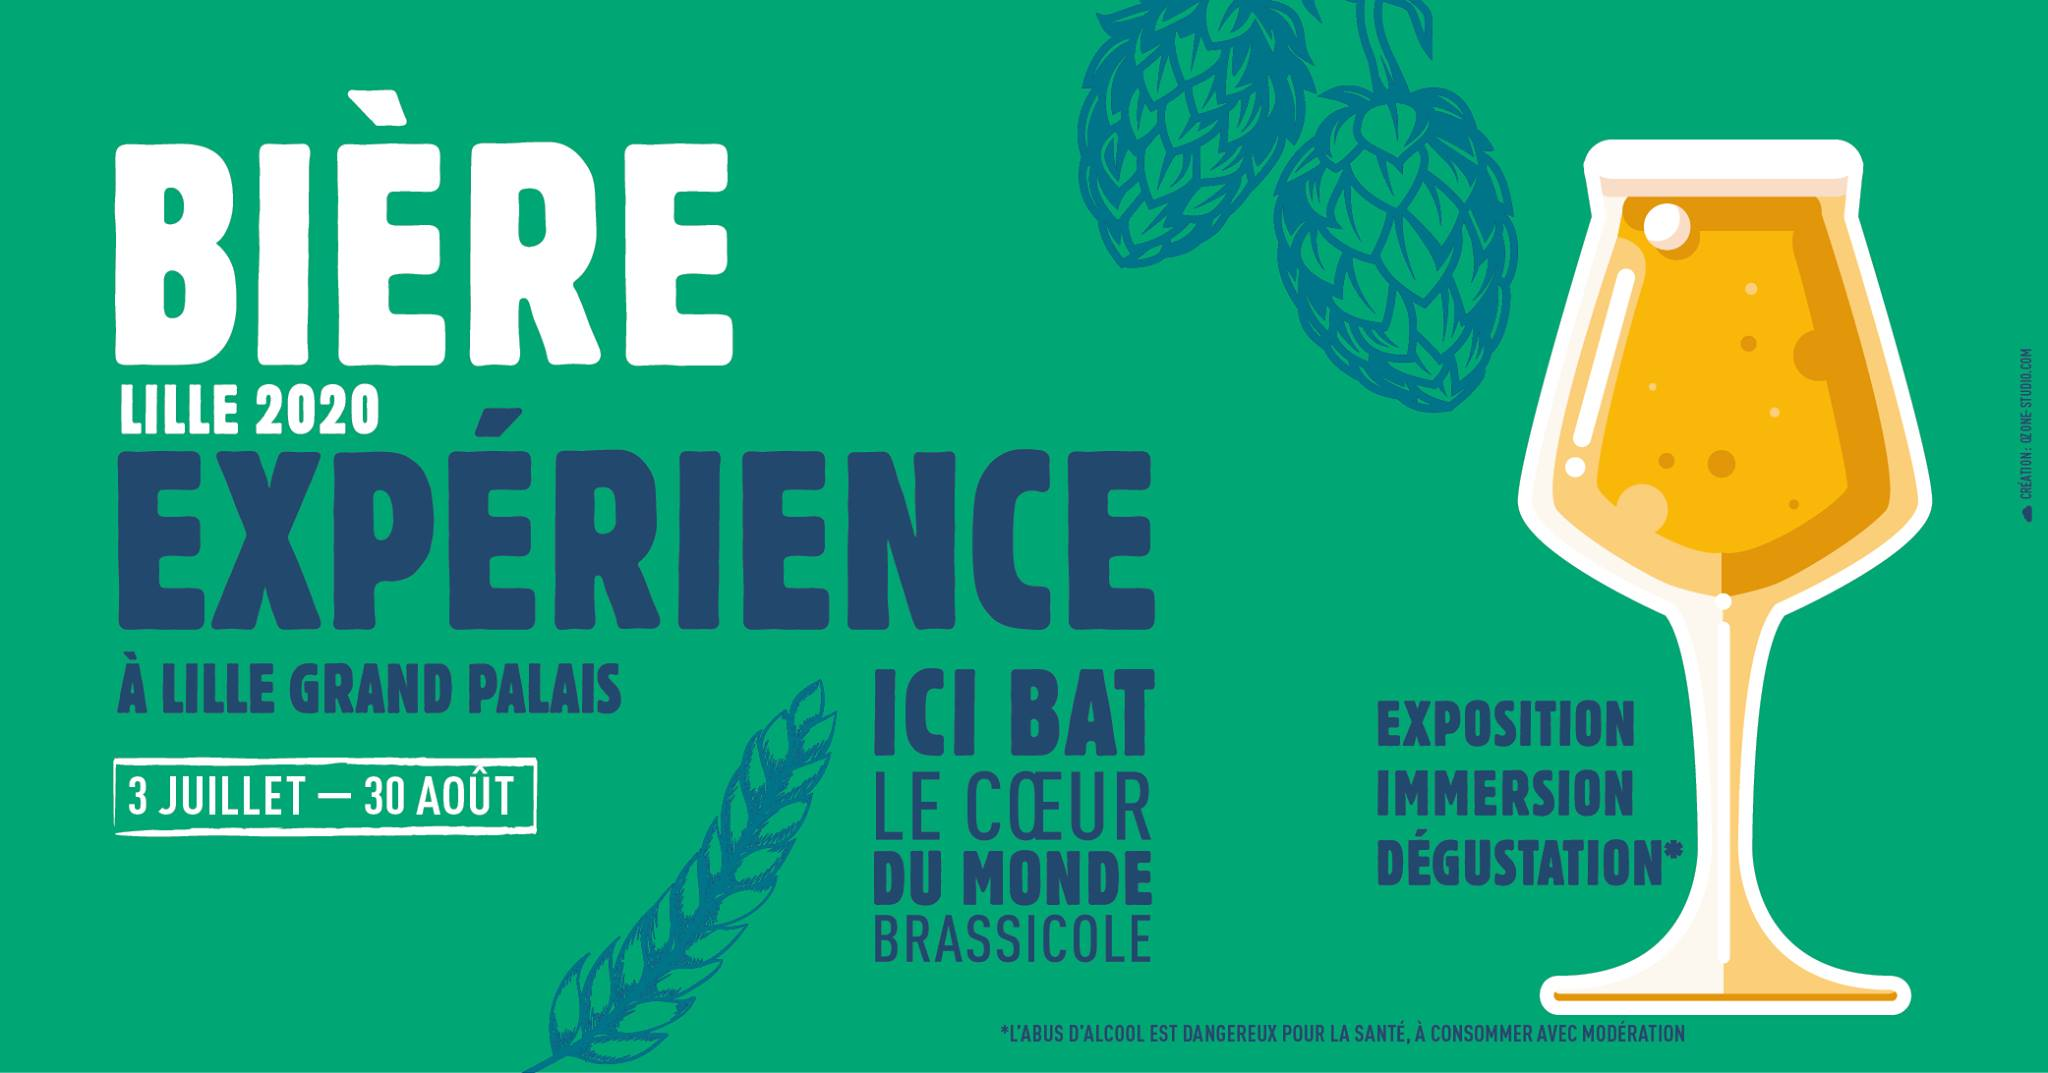 exposition biere experience lille 2020